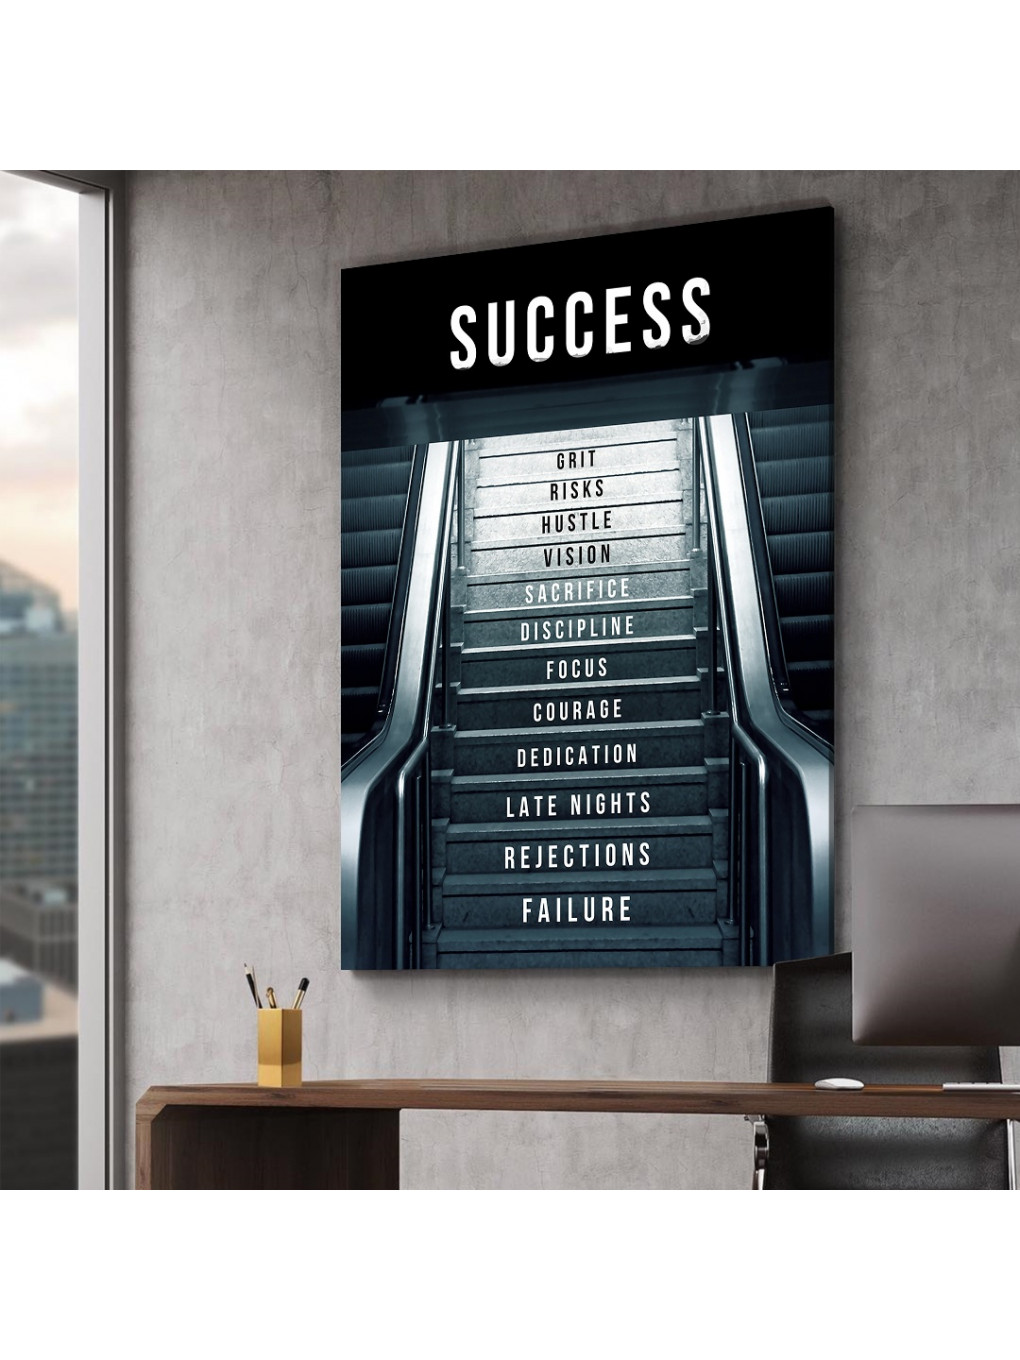 Take the Stairs - Success_SUC084_6